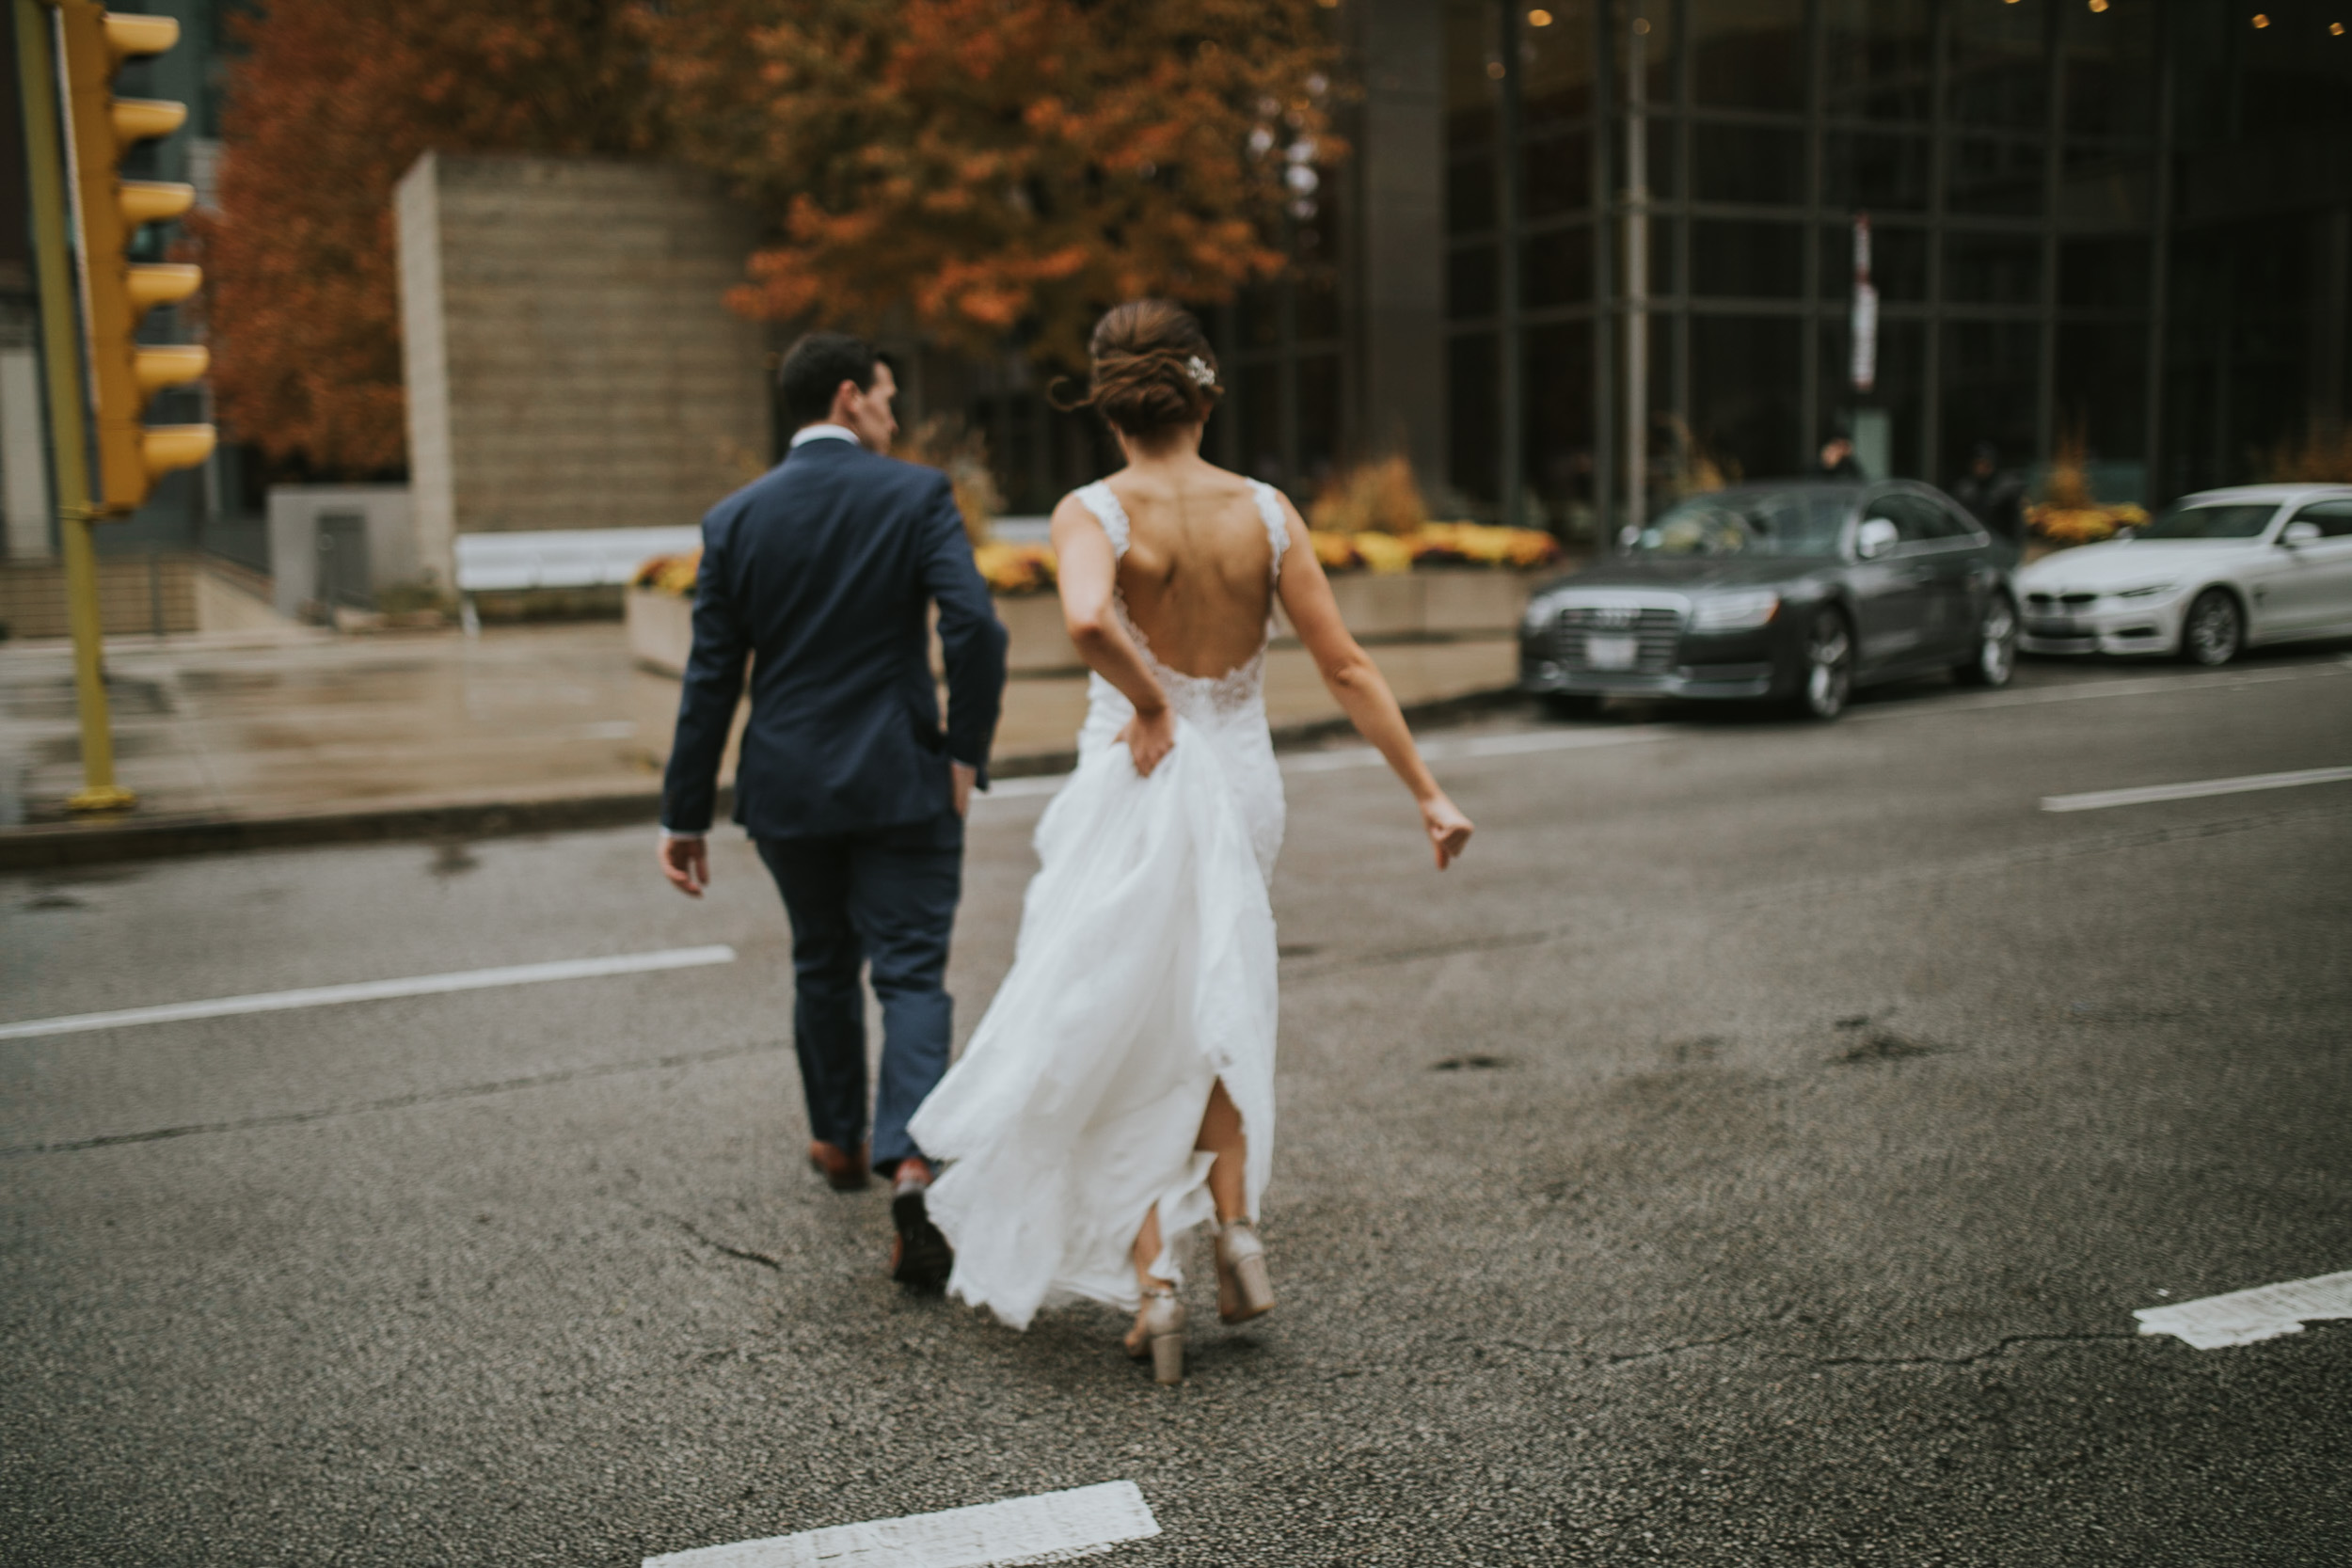 HaroldWashingtonLibraryWedding_Polly C Photography 1704144909.jpg